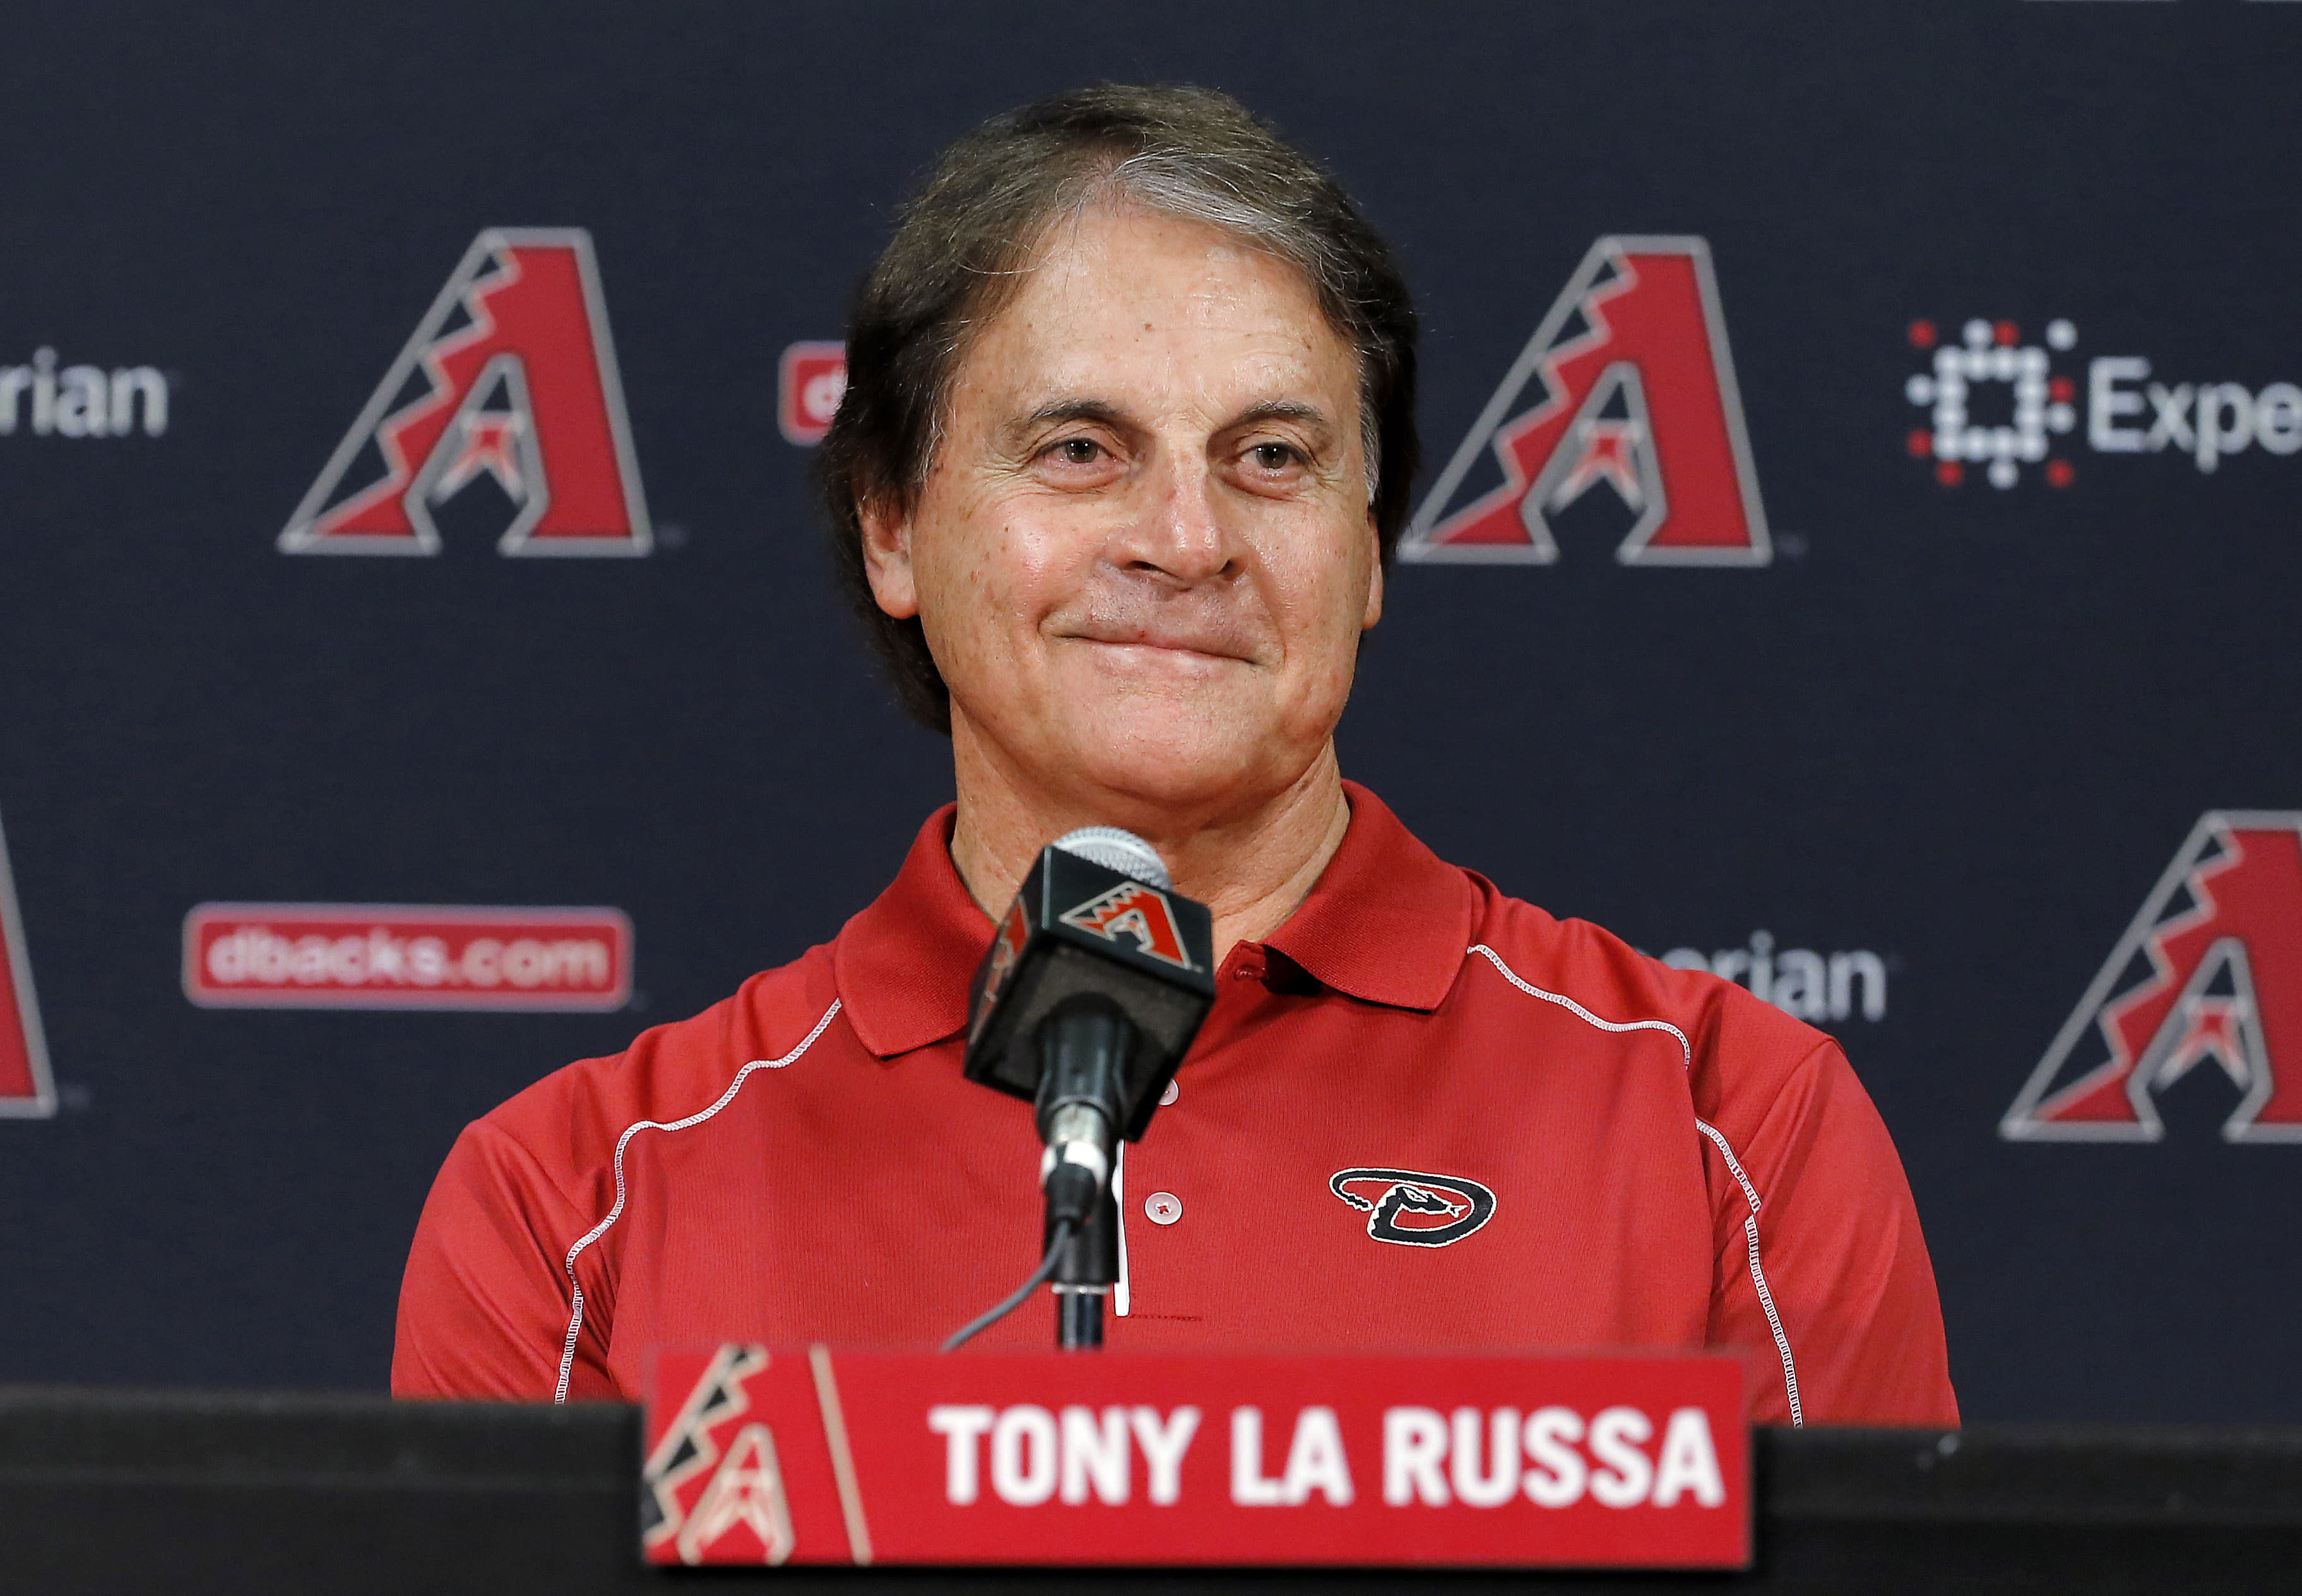 White Sox announce Hall of Famer Tony La Russa as new manager